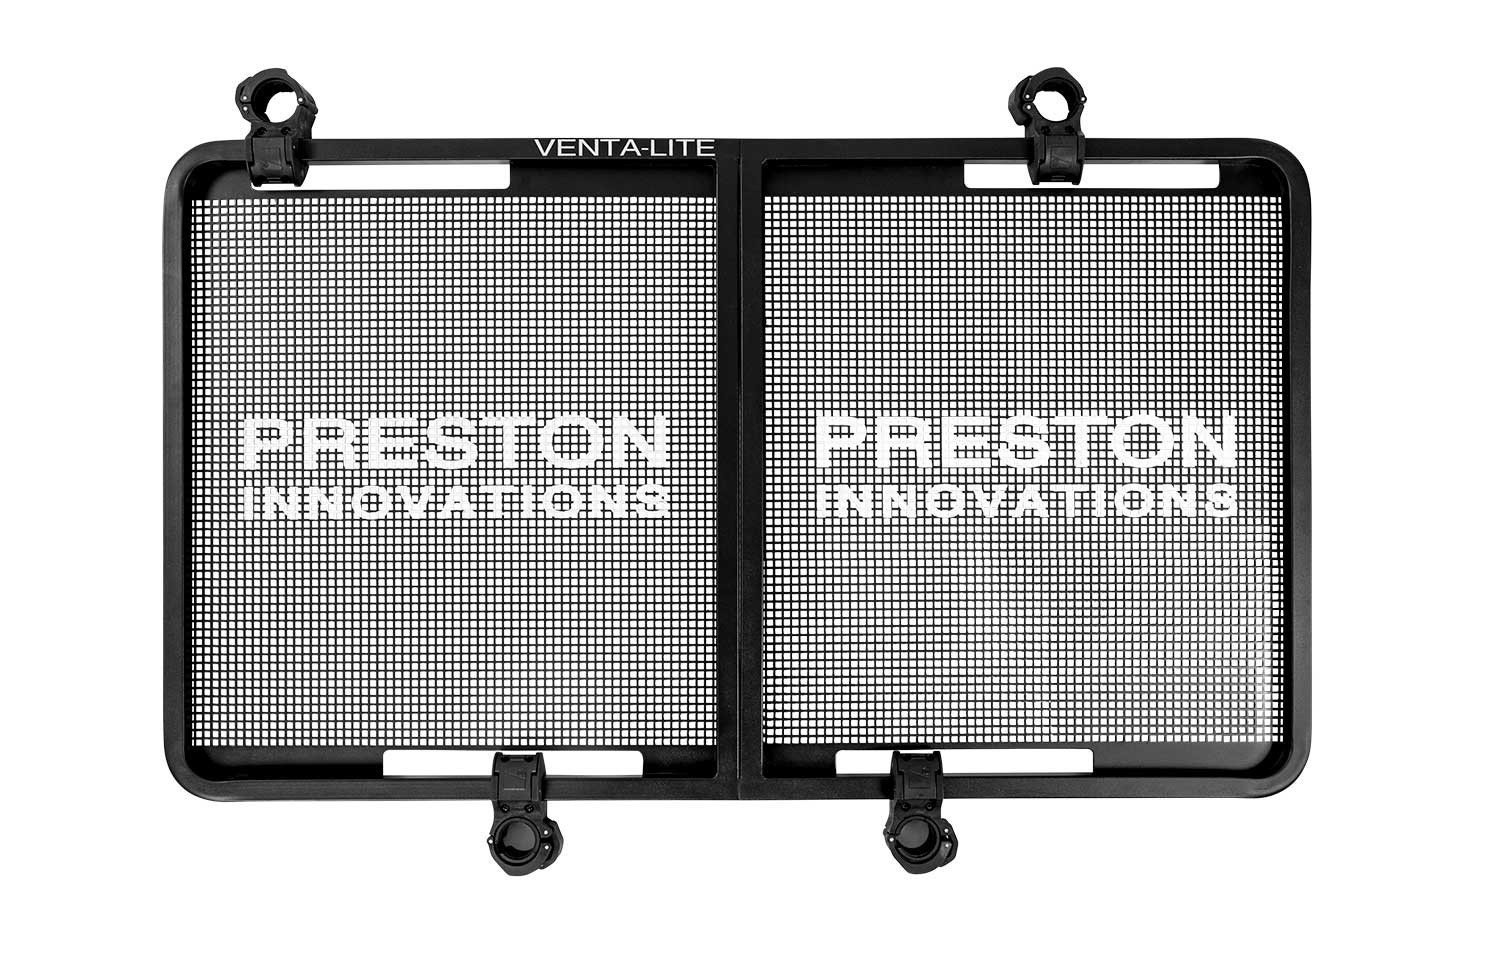 Preston Venta-Lite Side Tray - XL - Seitentablett